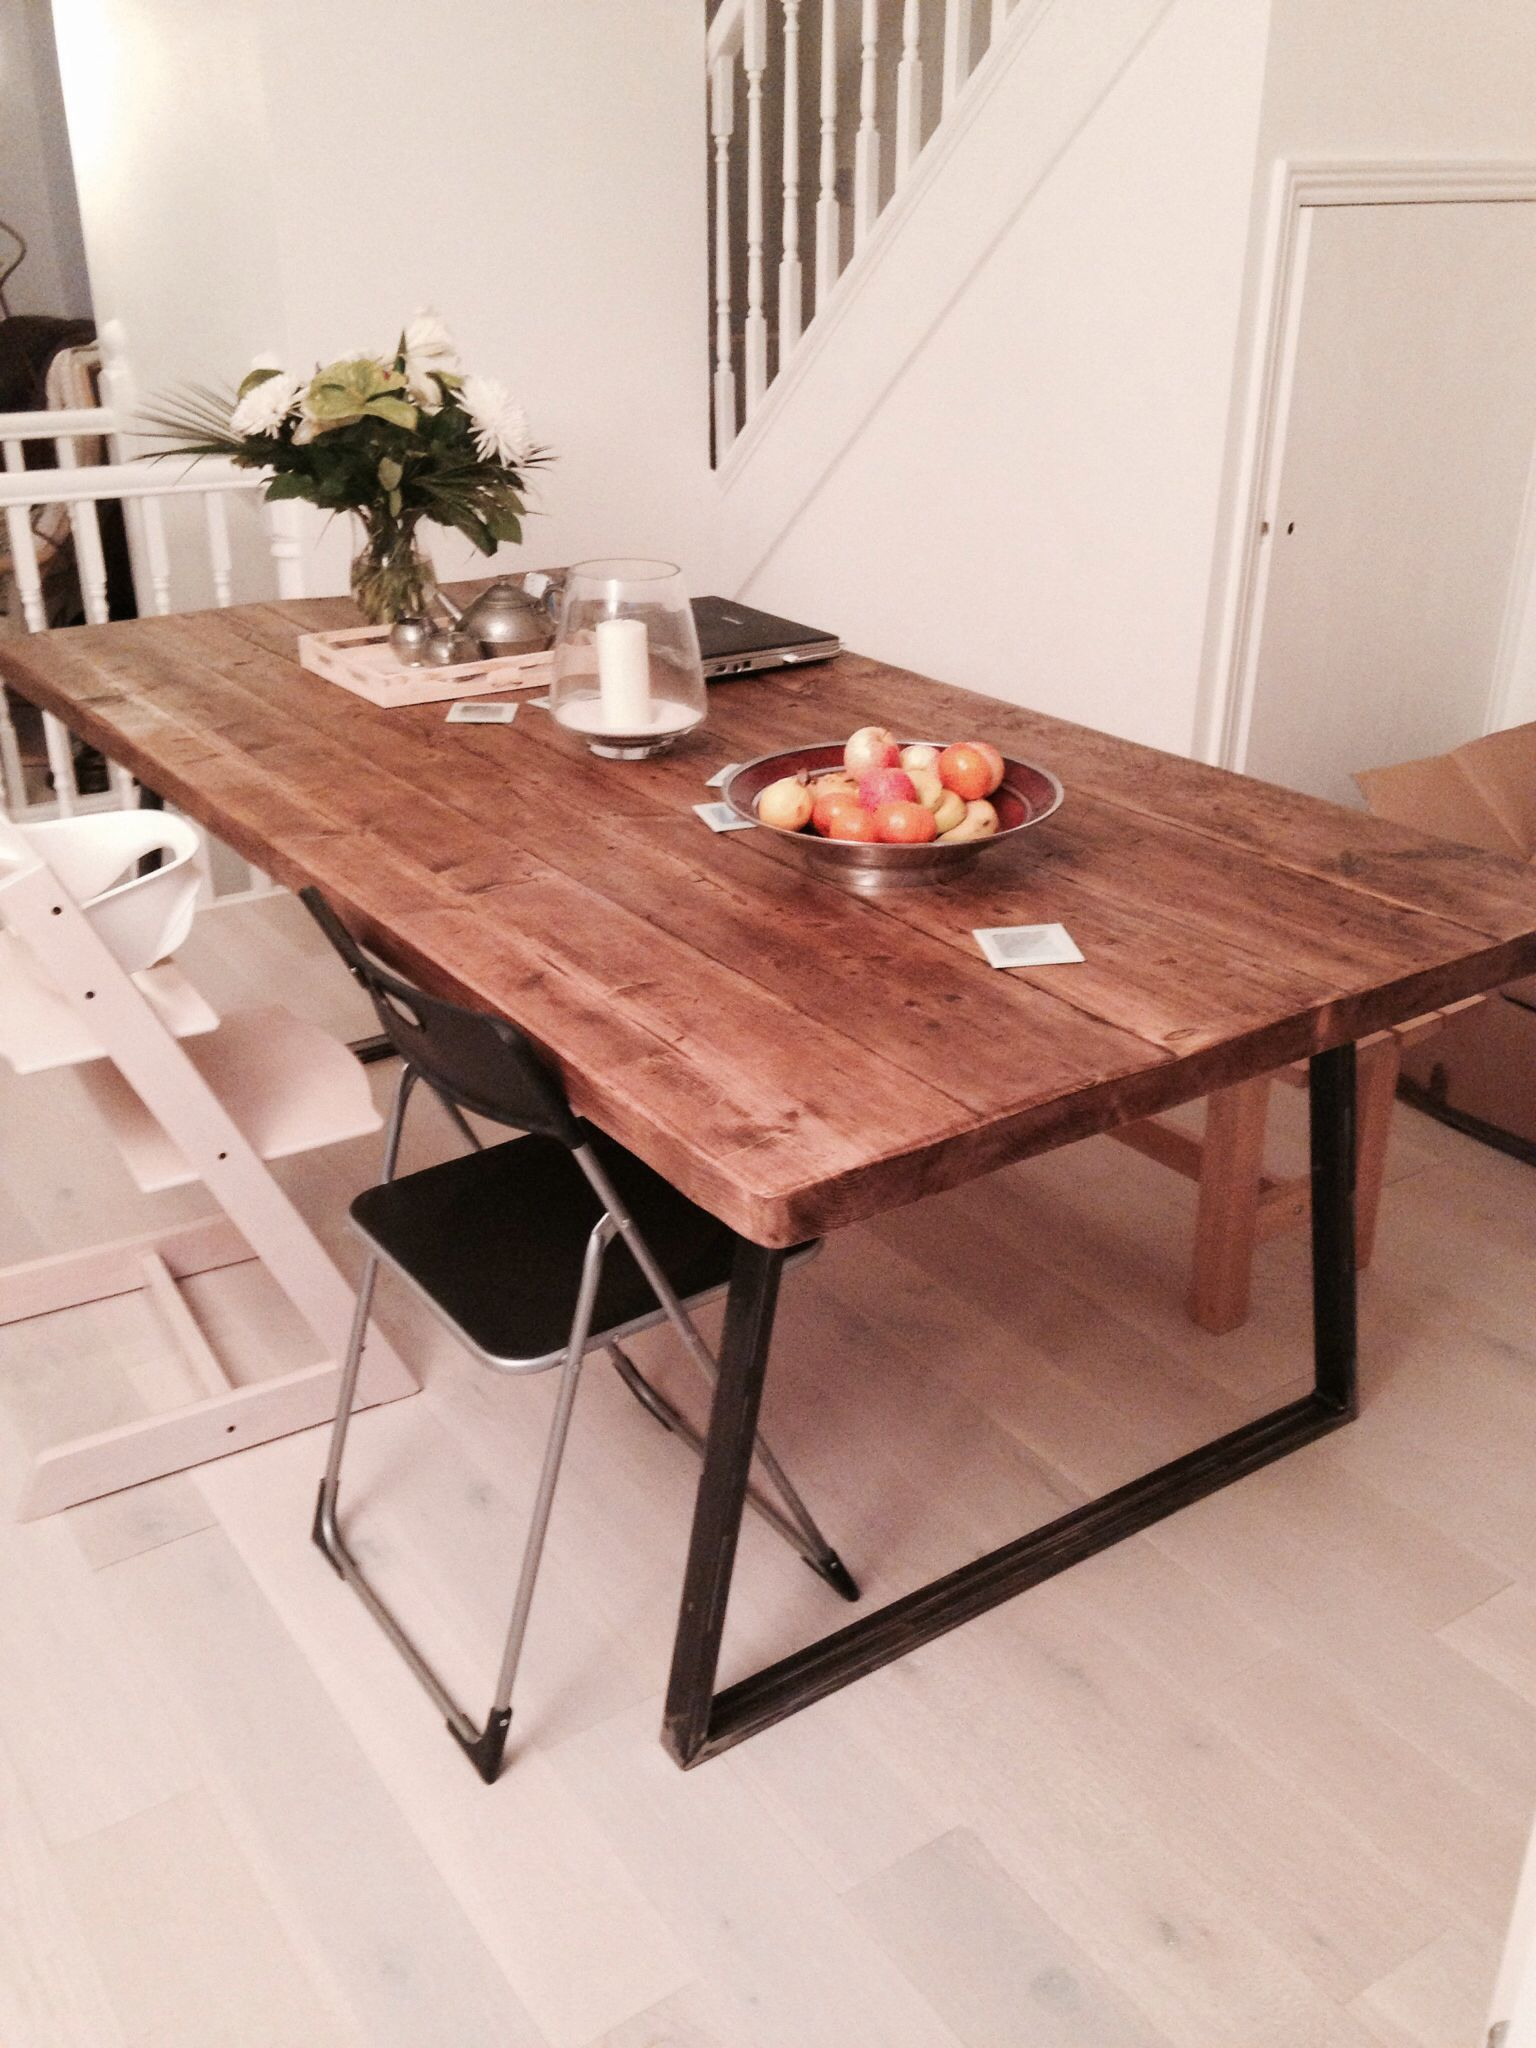 Our beautiful industrial style dining table from Heyl Interiors